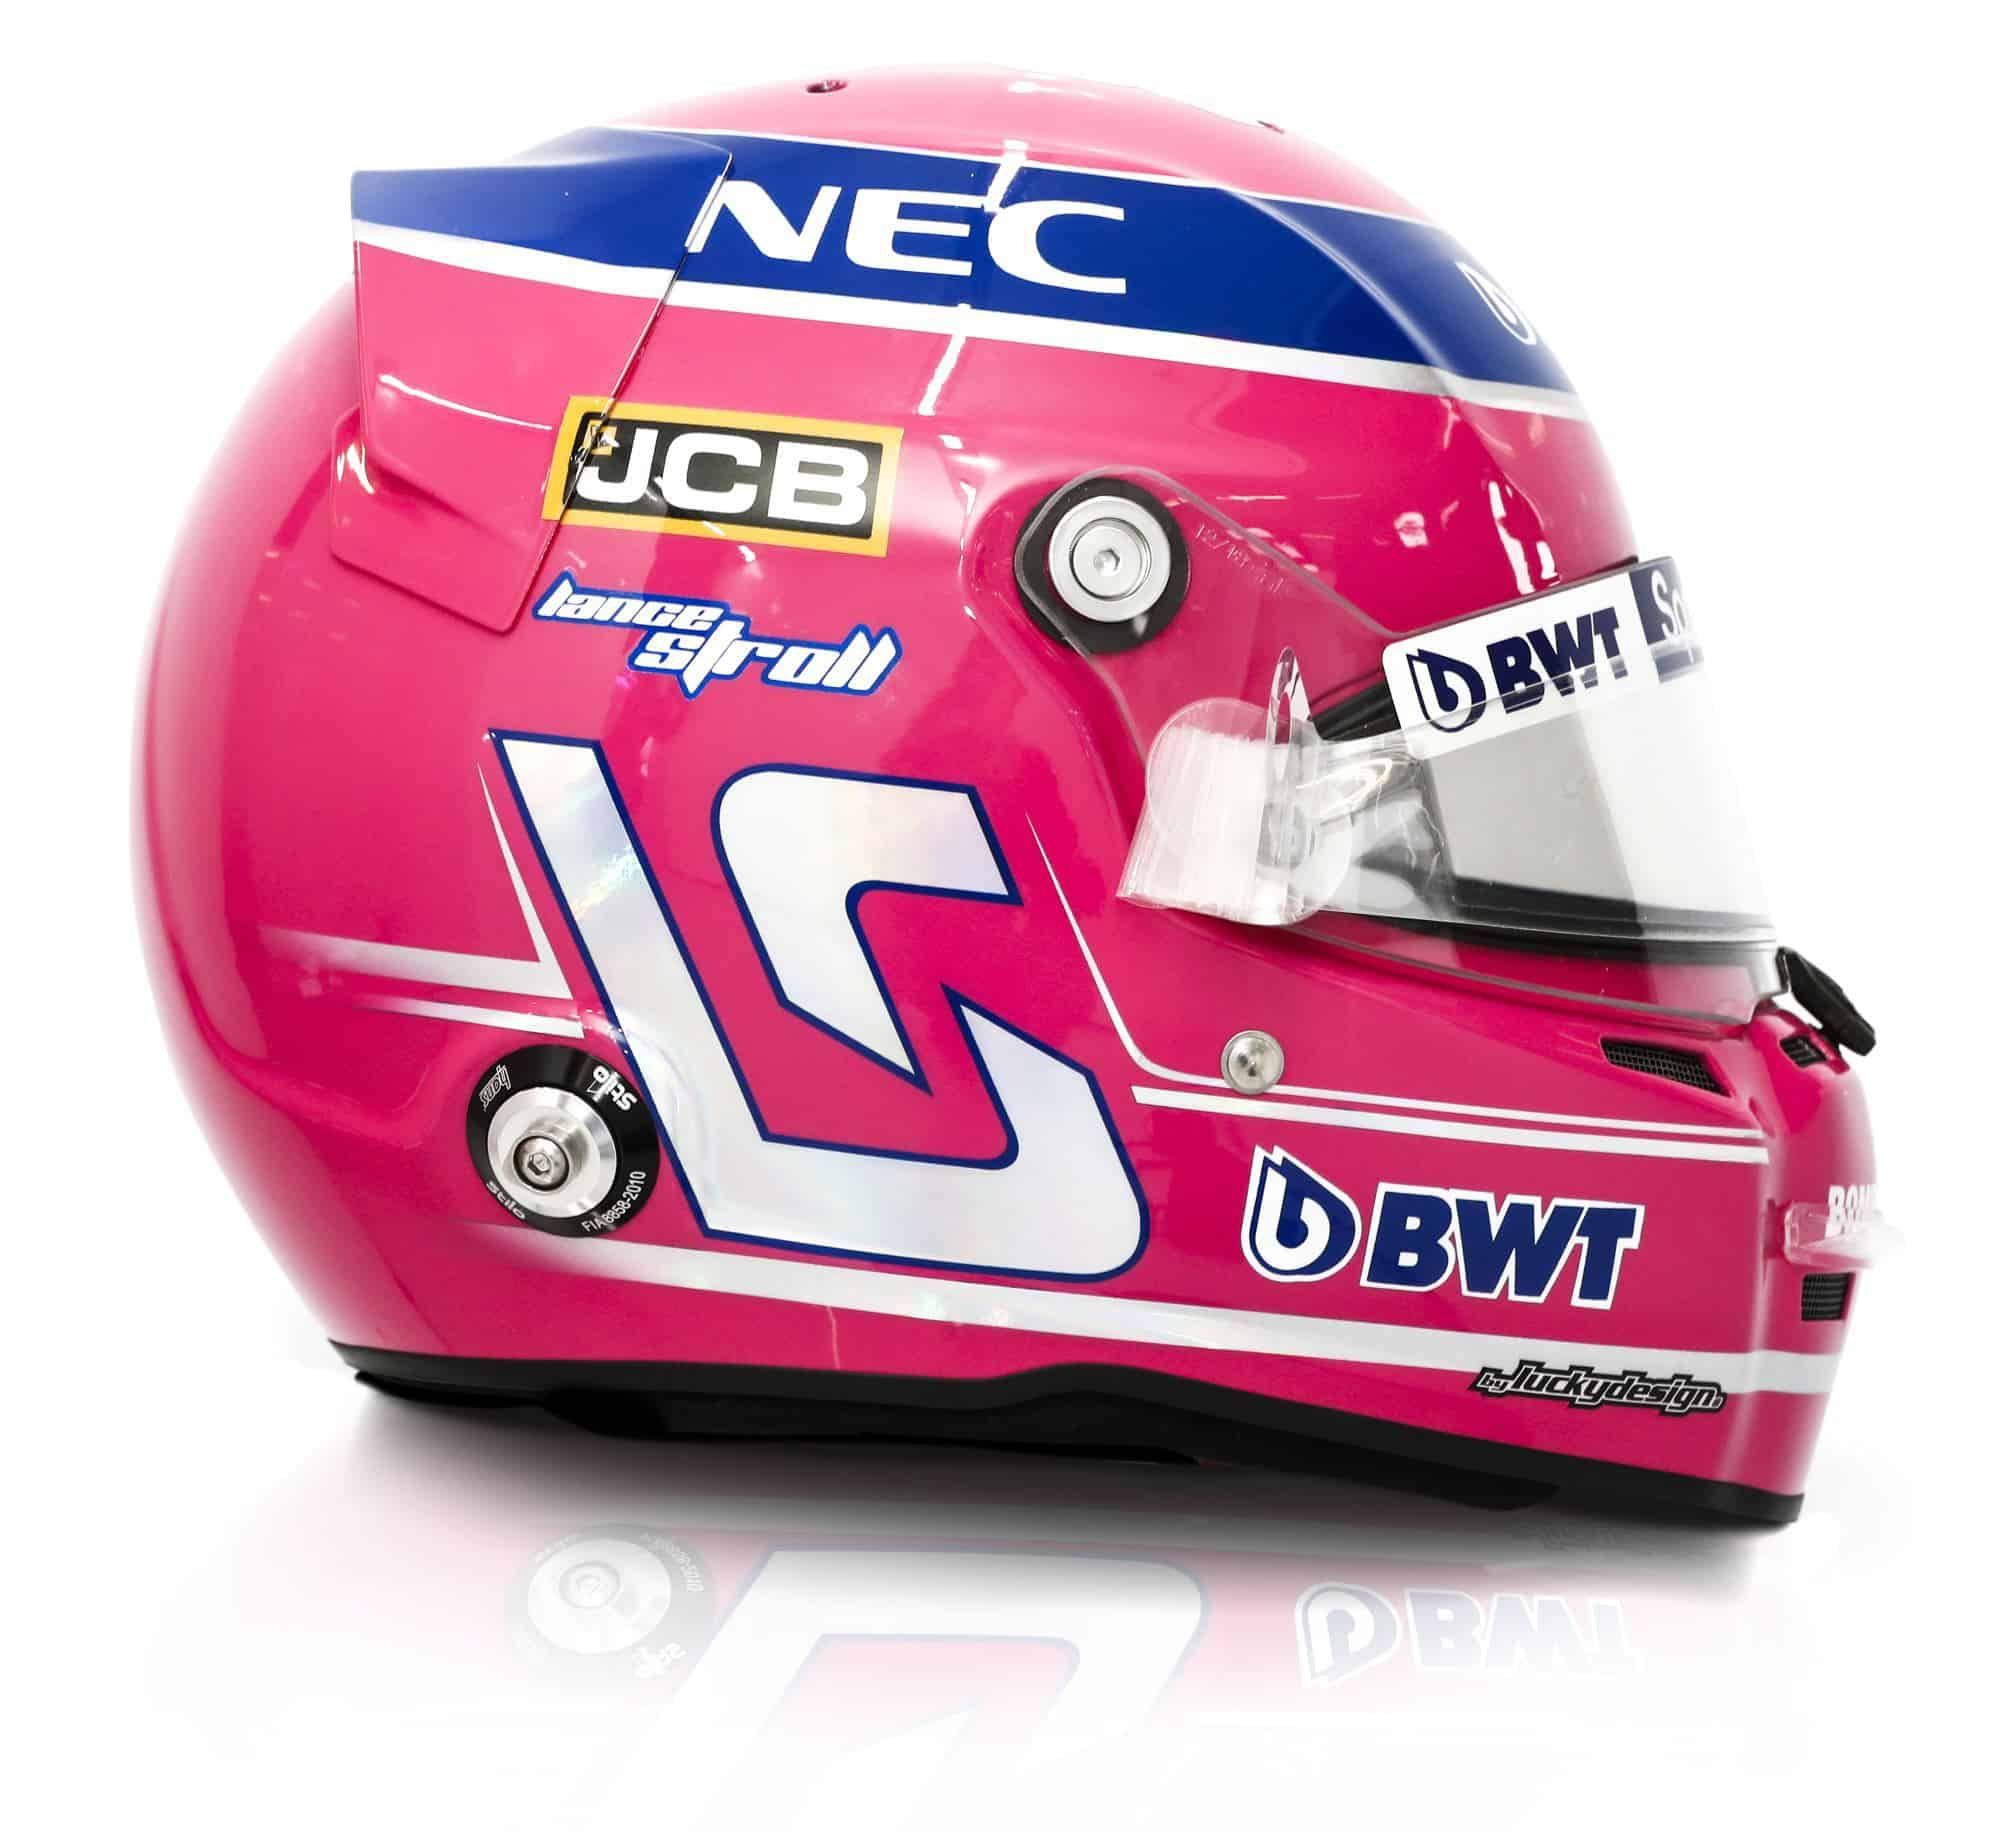 2019 Sport Pesa Racing Point Lance Stroll helmet right side Photo Racing Point Edited by MAXF1net